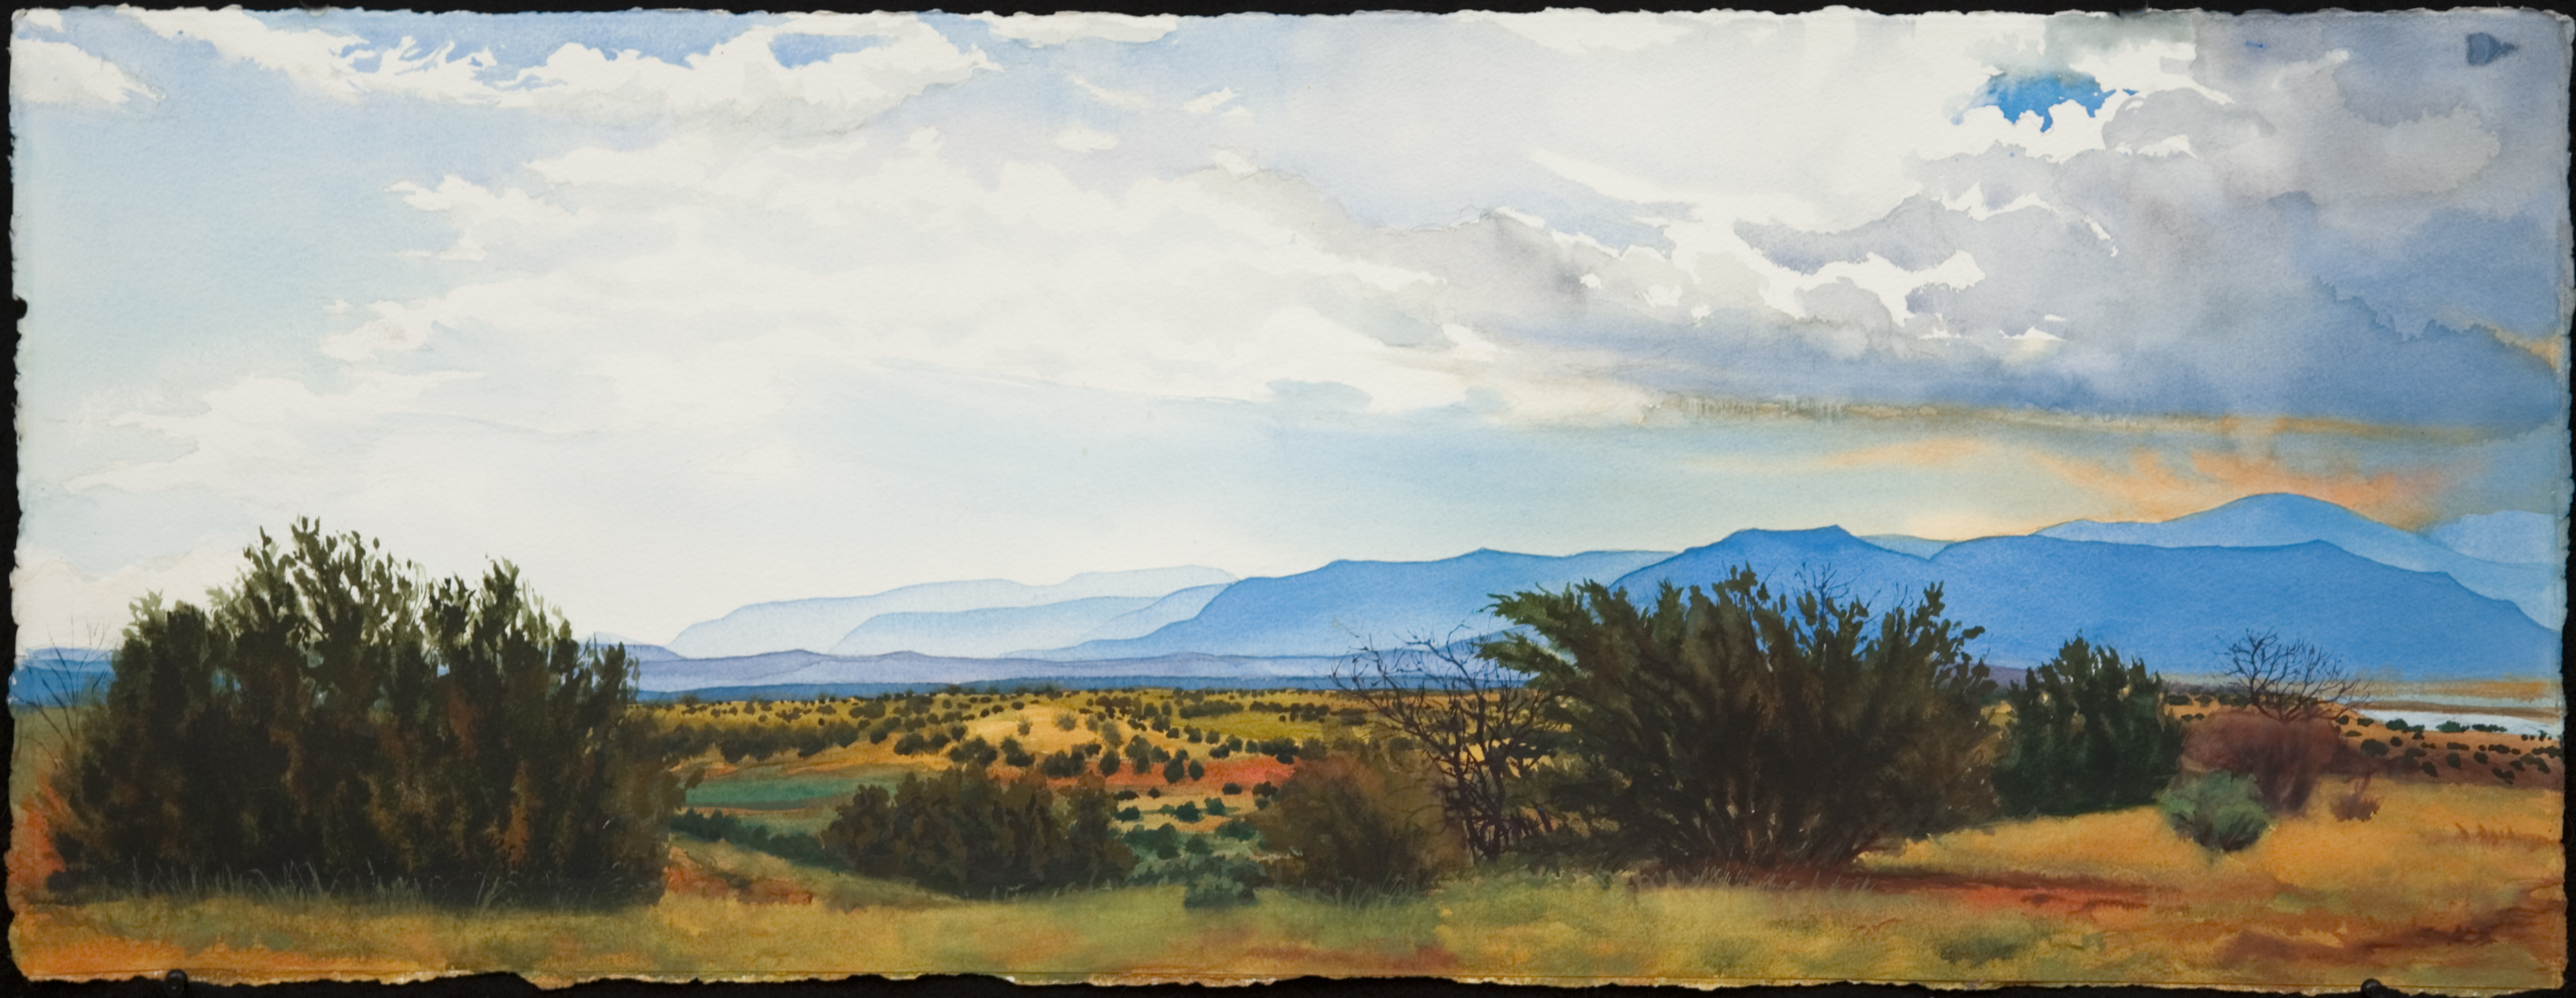 Ghost Ranch IV by John Hulsey